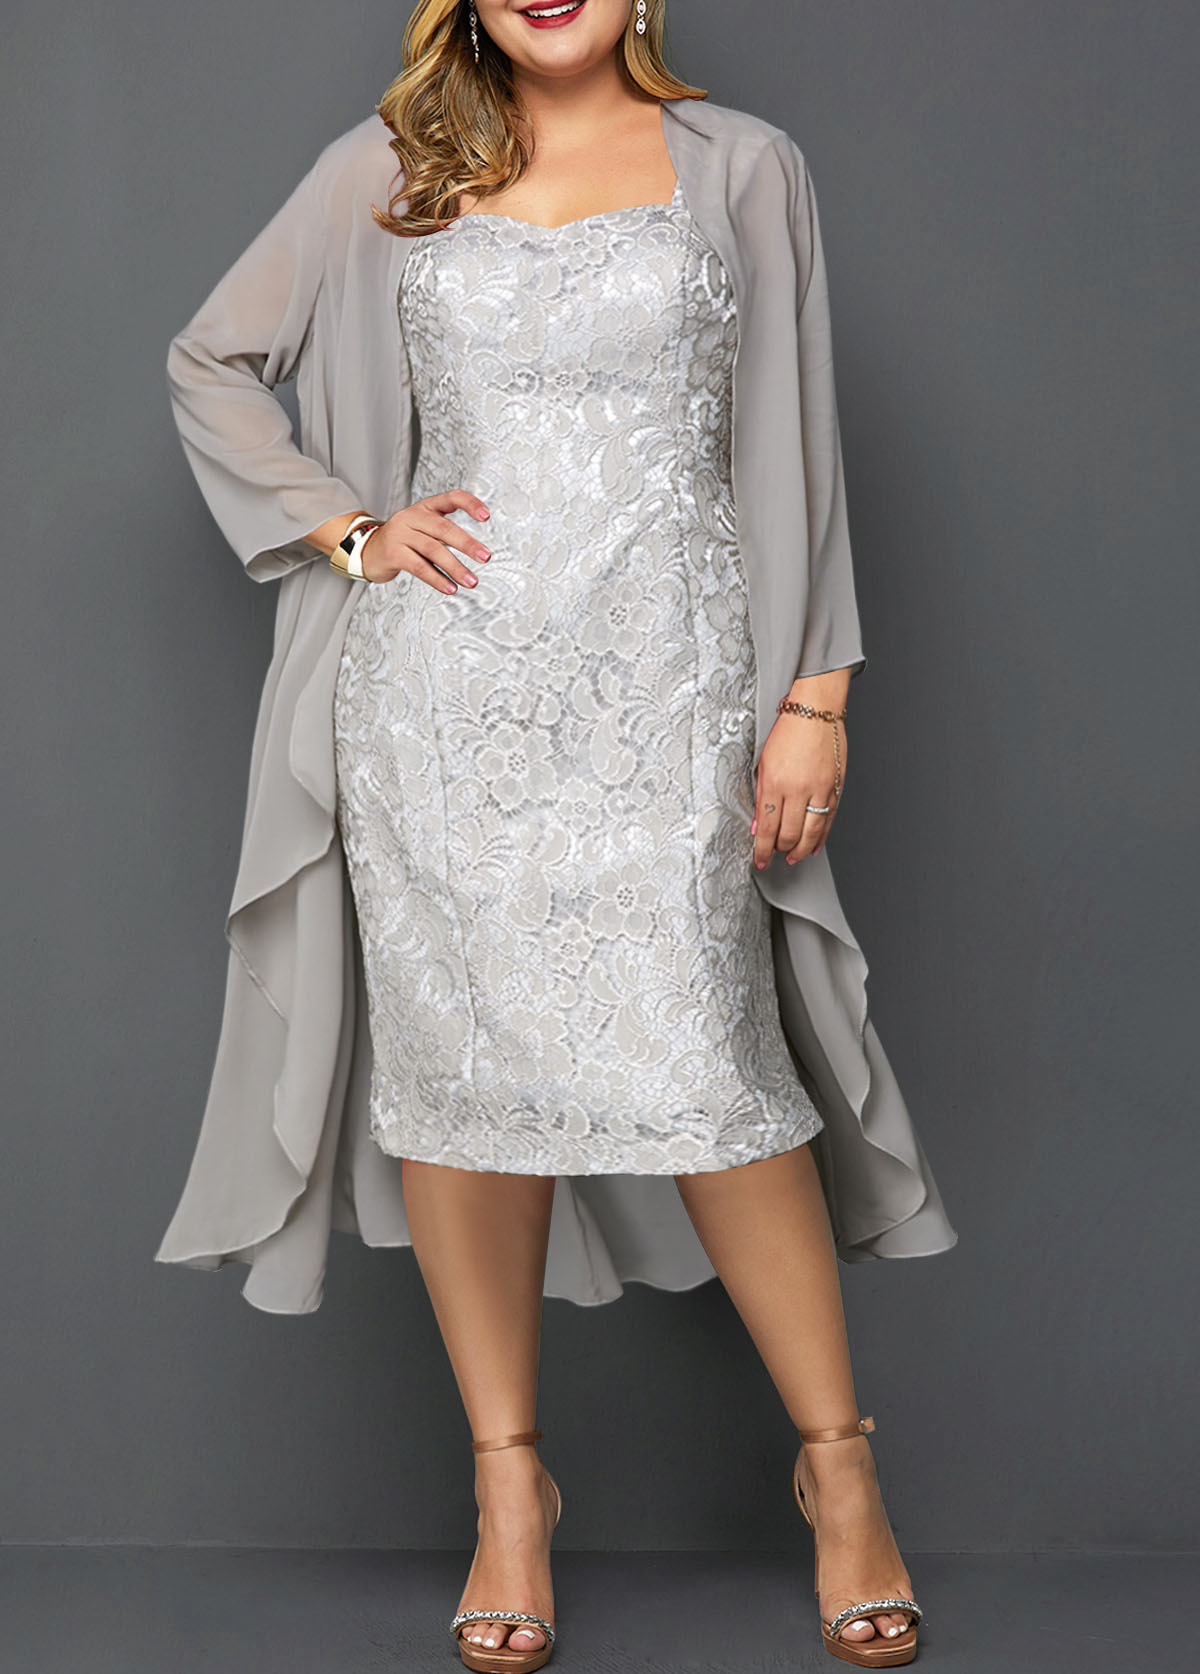 Plus Size Chiffon Cardigan and Lace Sleeveless Dress